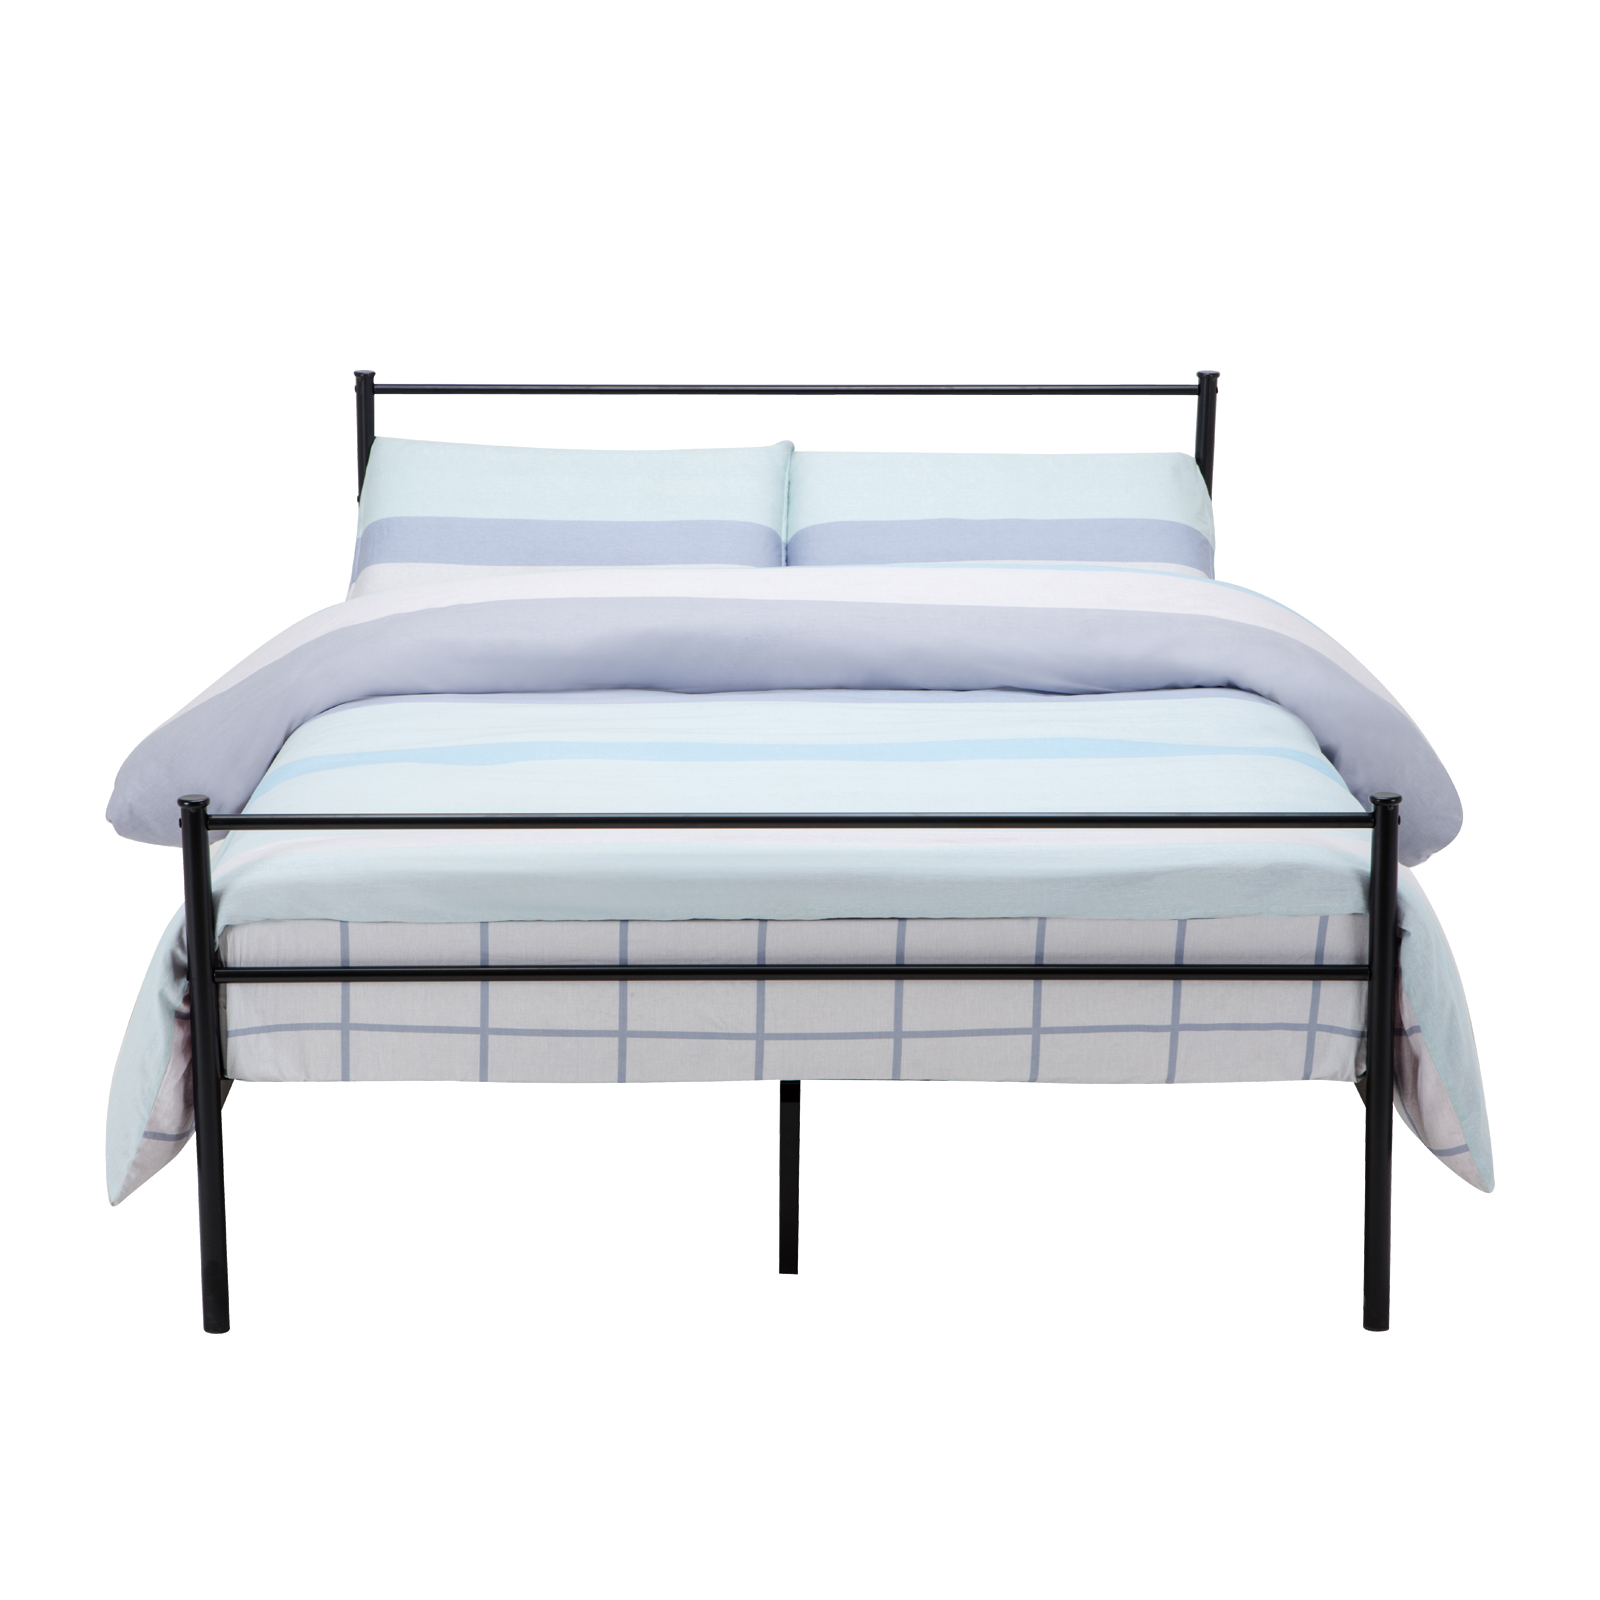 Twin full queen size metal bed frame platform headboards 6 2 twin beds make a queen